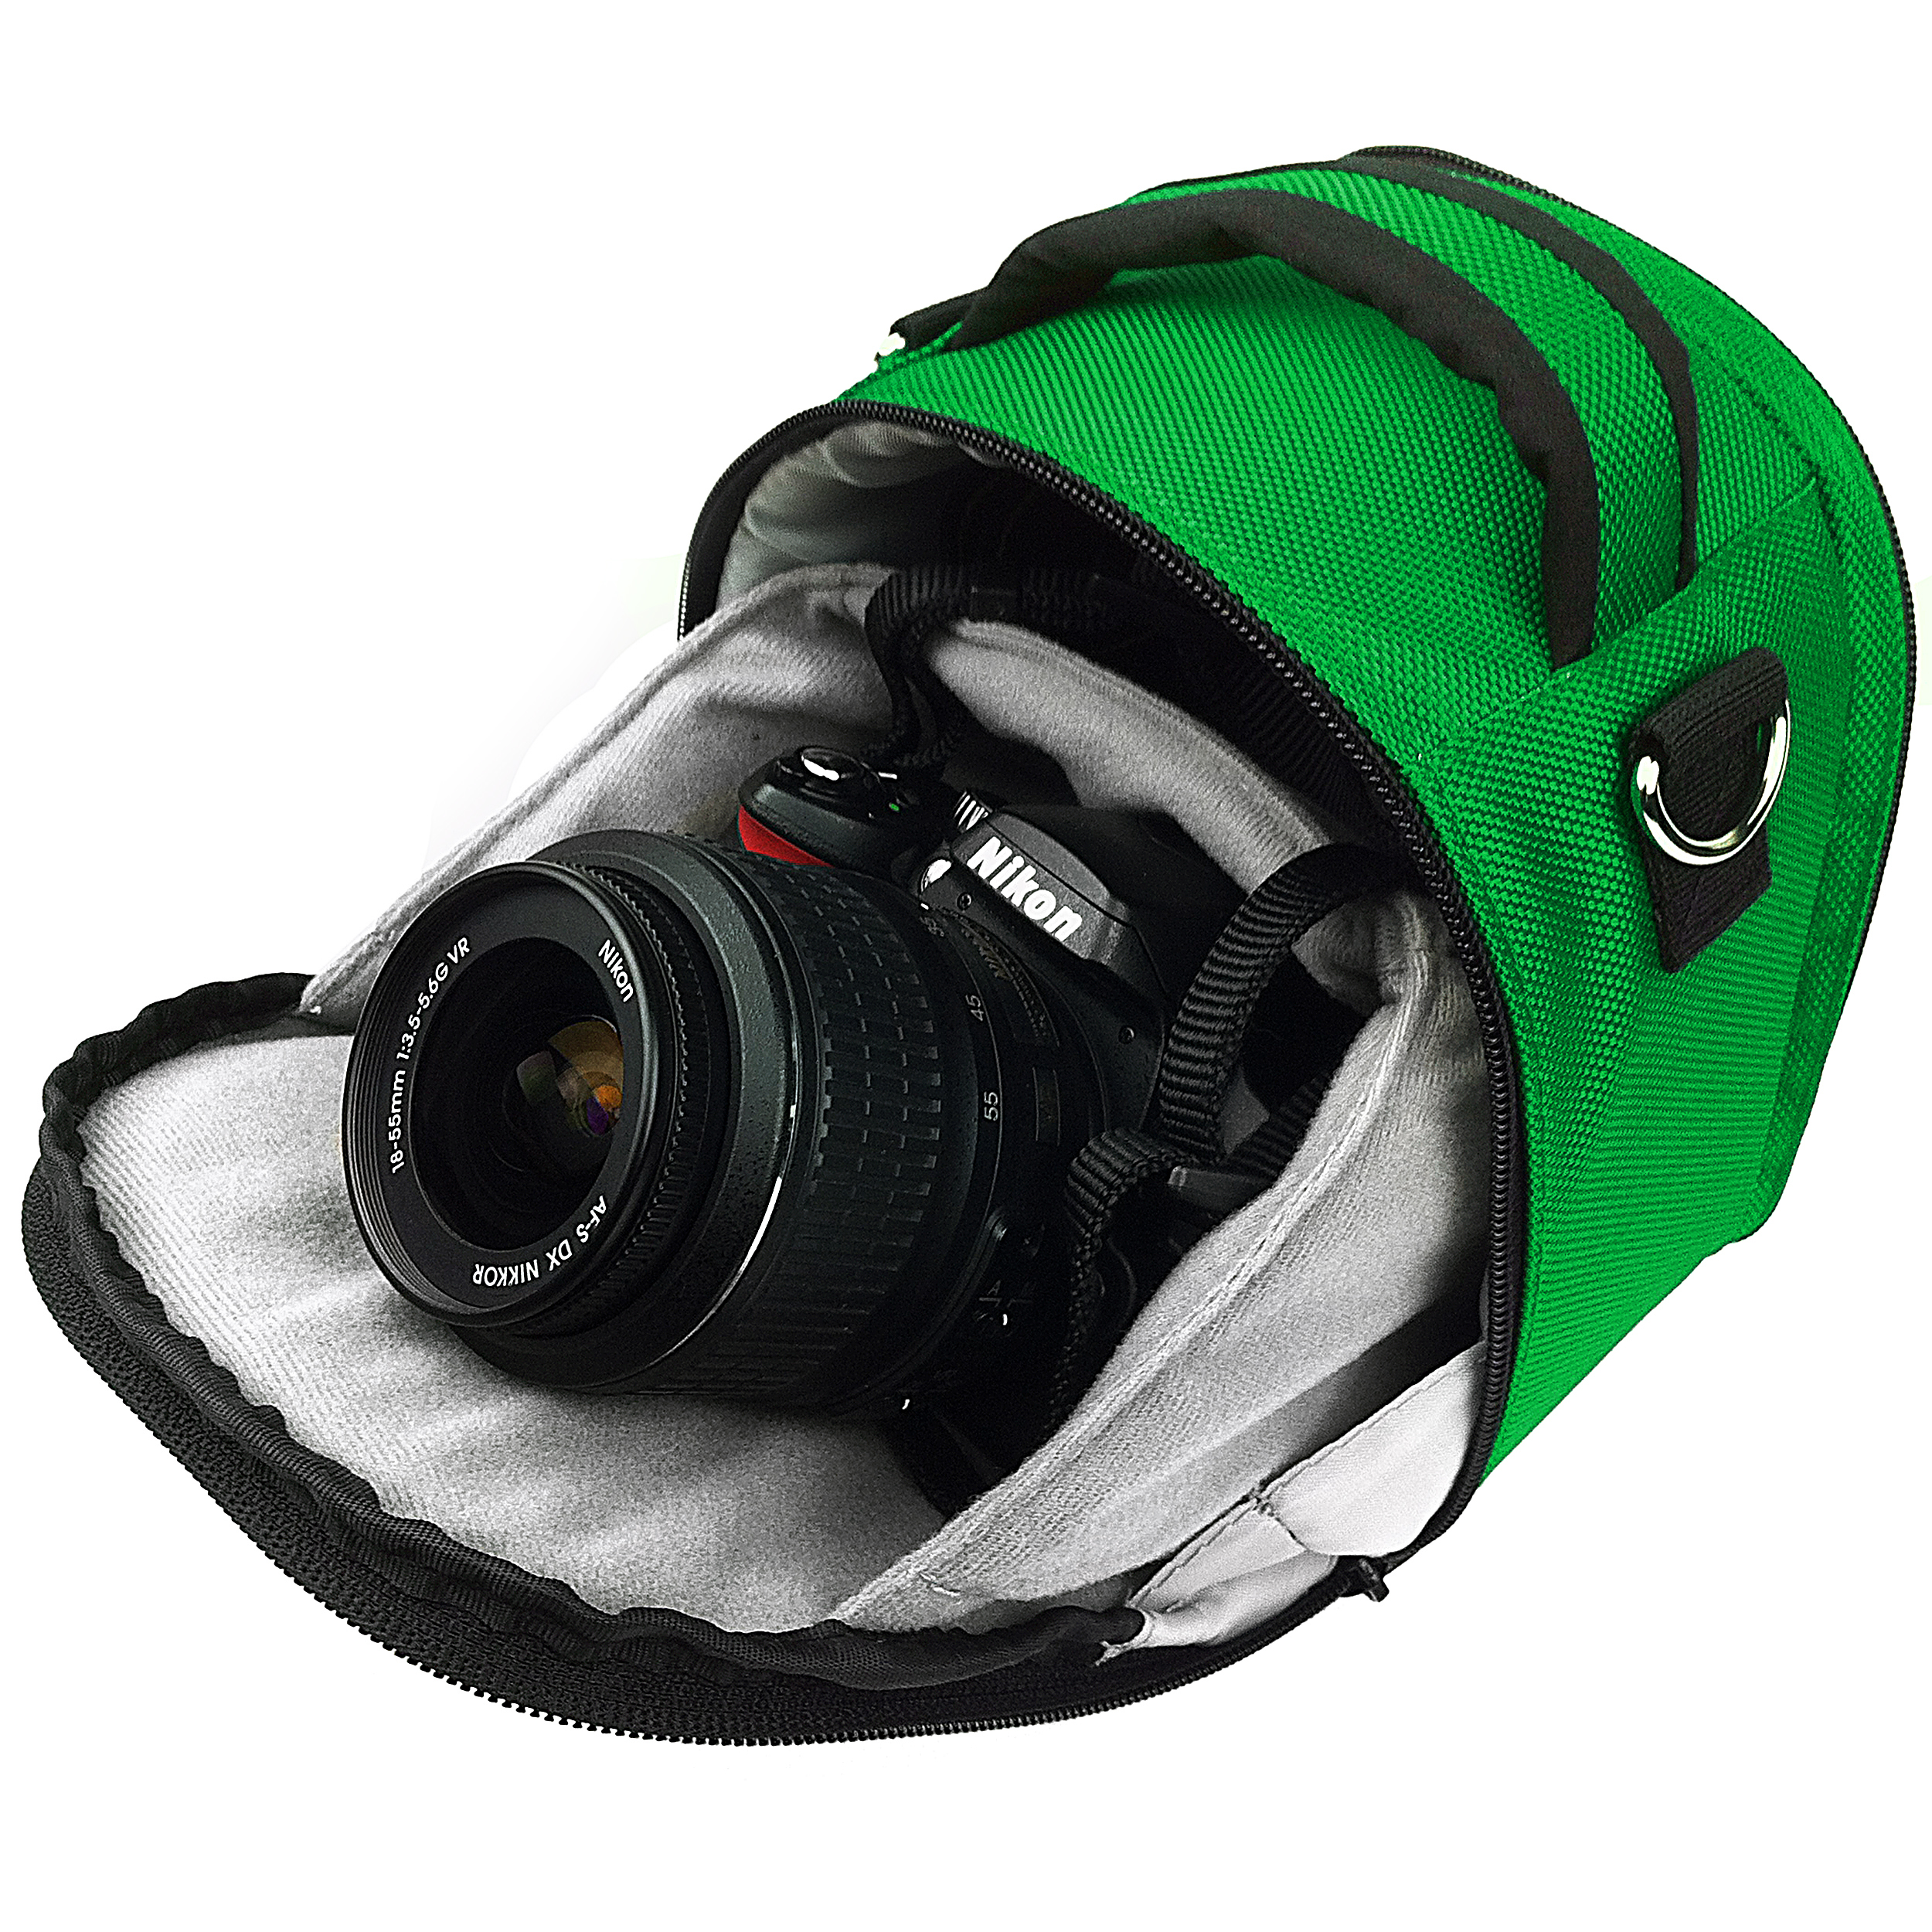 Laurel Case for DSLR Cameras (Dark Green)